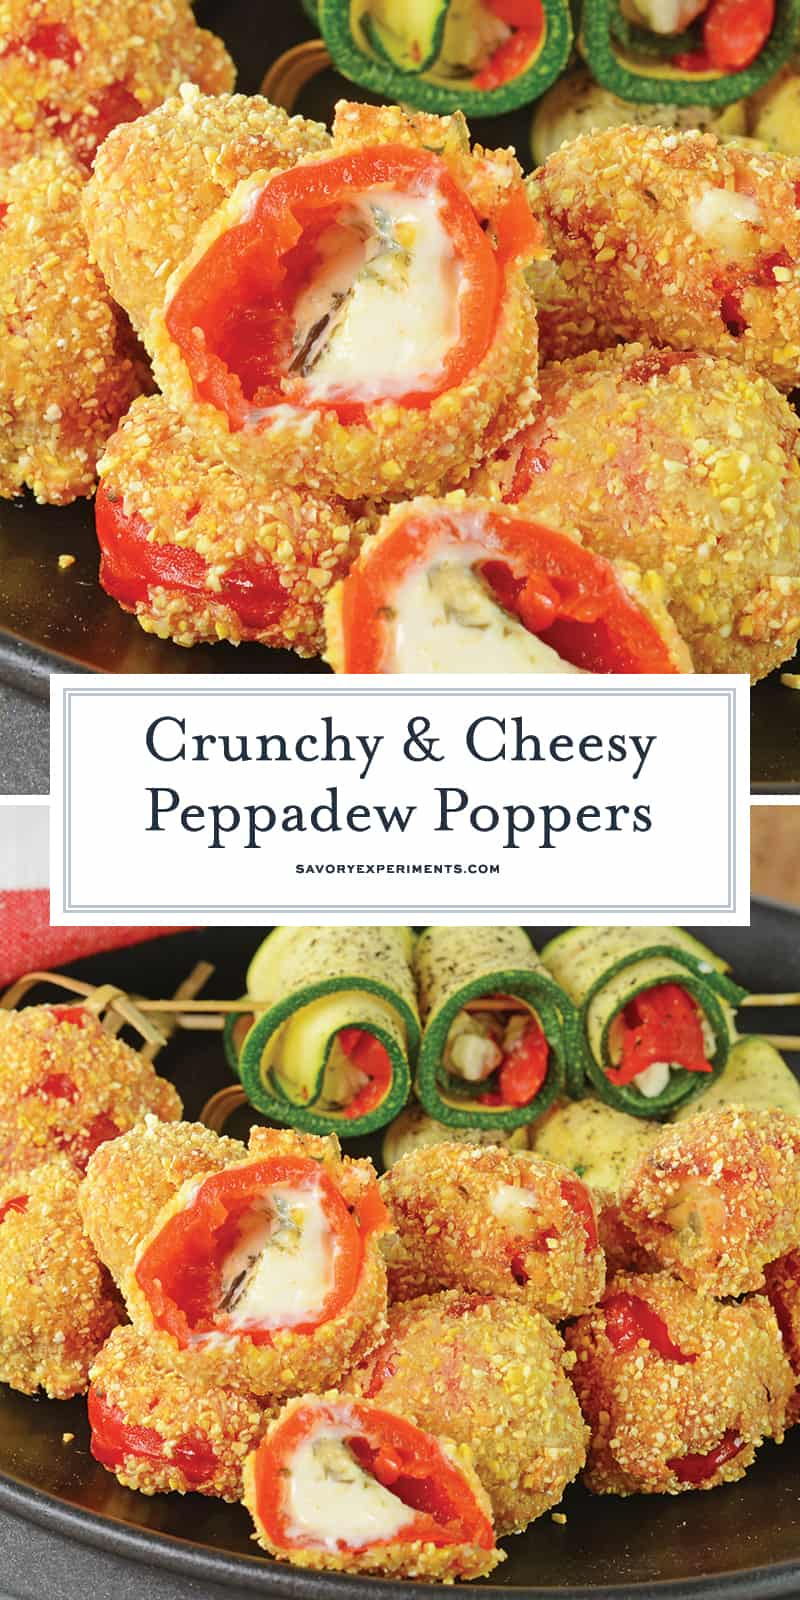 Sweet peppadew peppers stuffed with tangy goat cheese, tossed in cornmeal and then lightly fried. Dip in a chipotle aioli, green goddess or honey mustard sauce. #cheesepoppers www.savoryexperiments.com